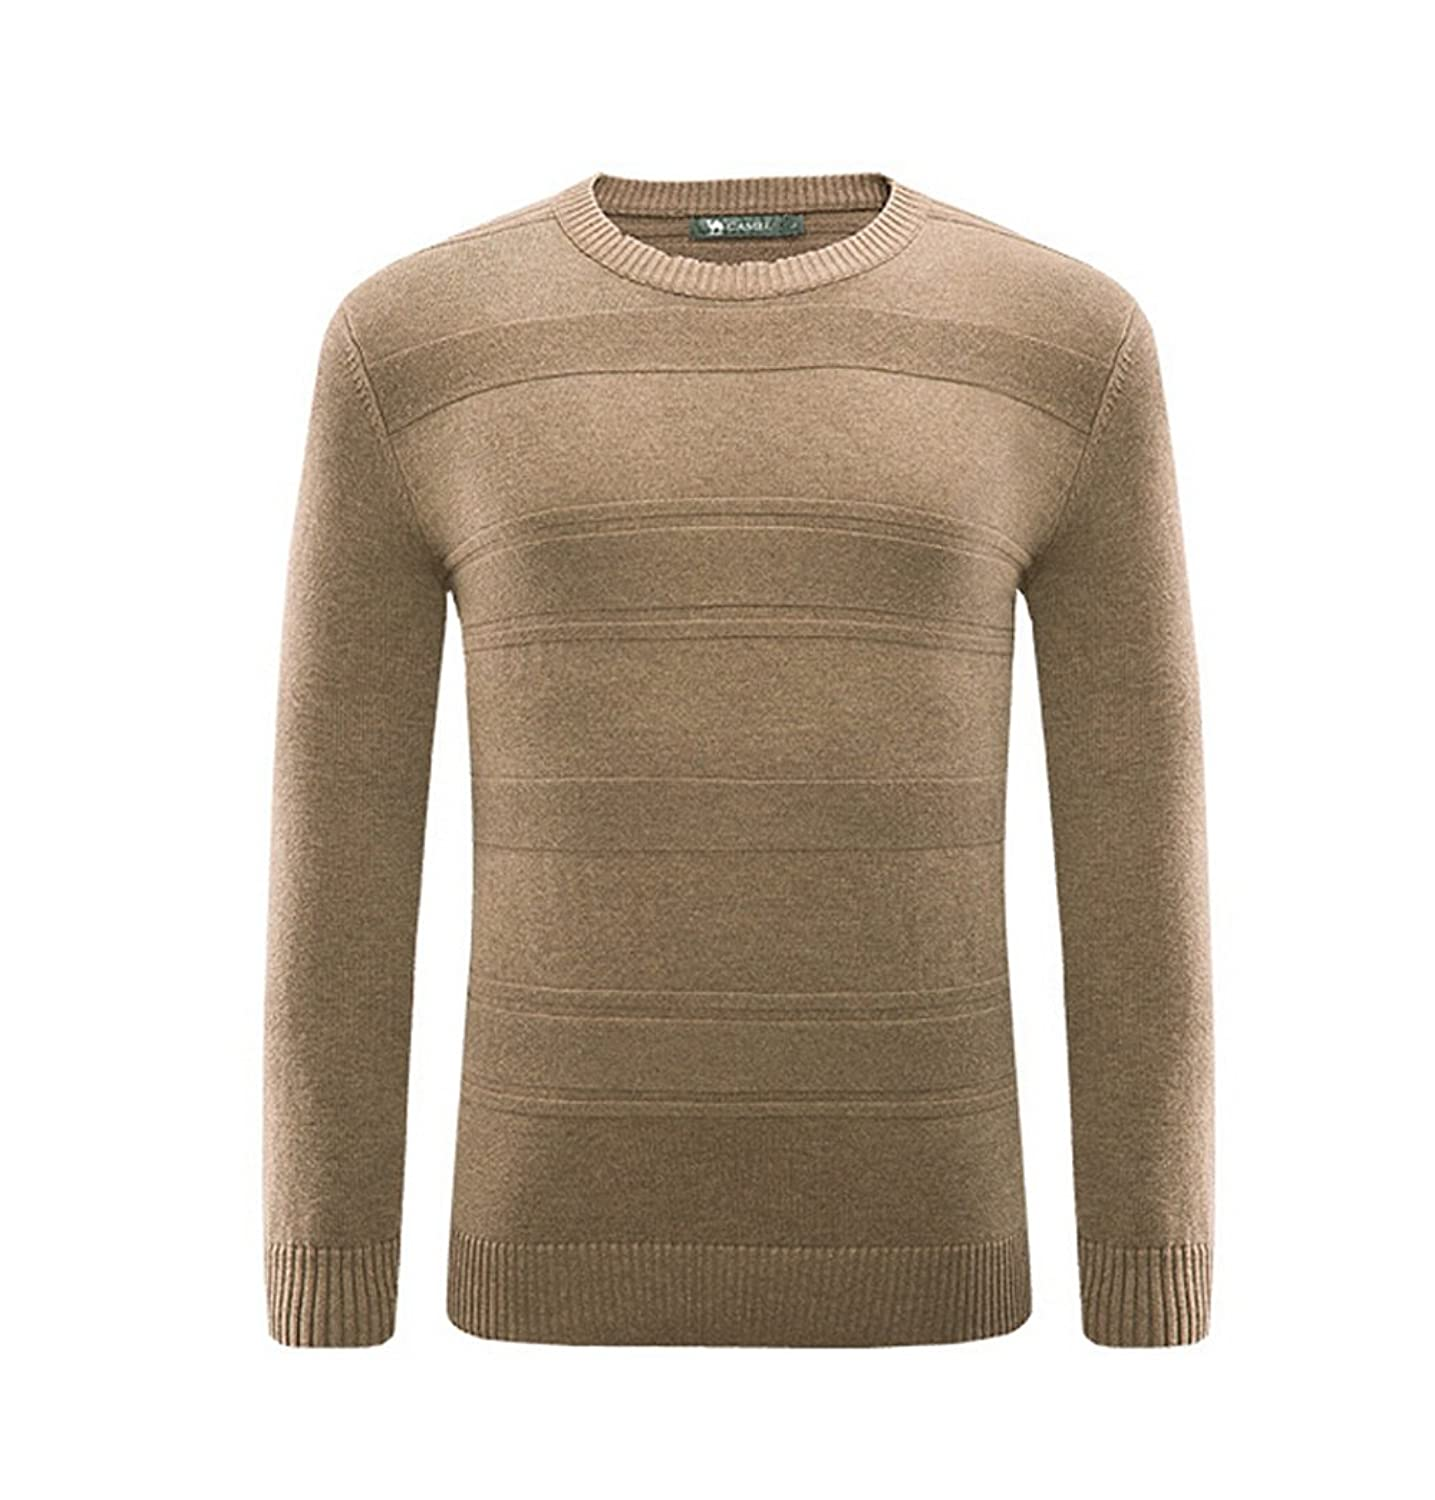 Camel Men's Casual Soft Crew-Neck Knit Sweater Jumpers Casual Pullover Sweaters